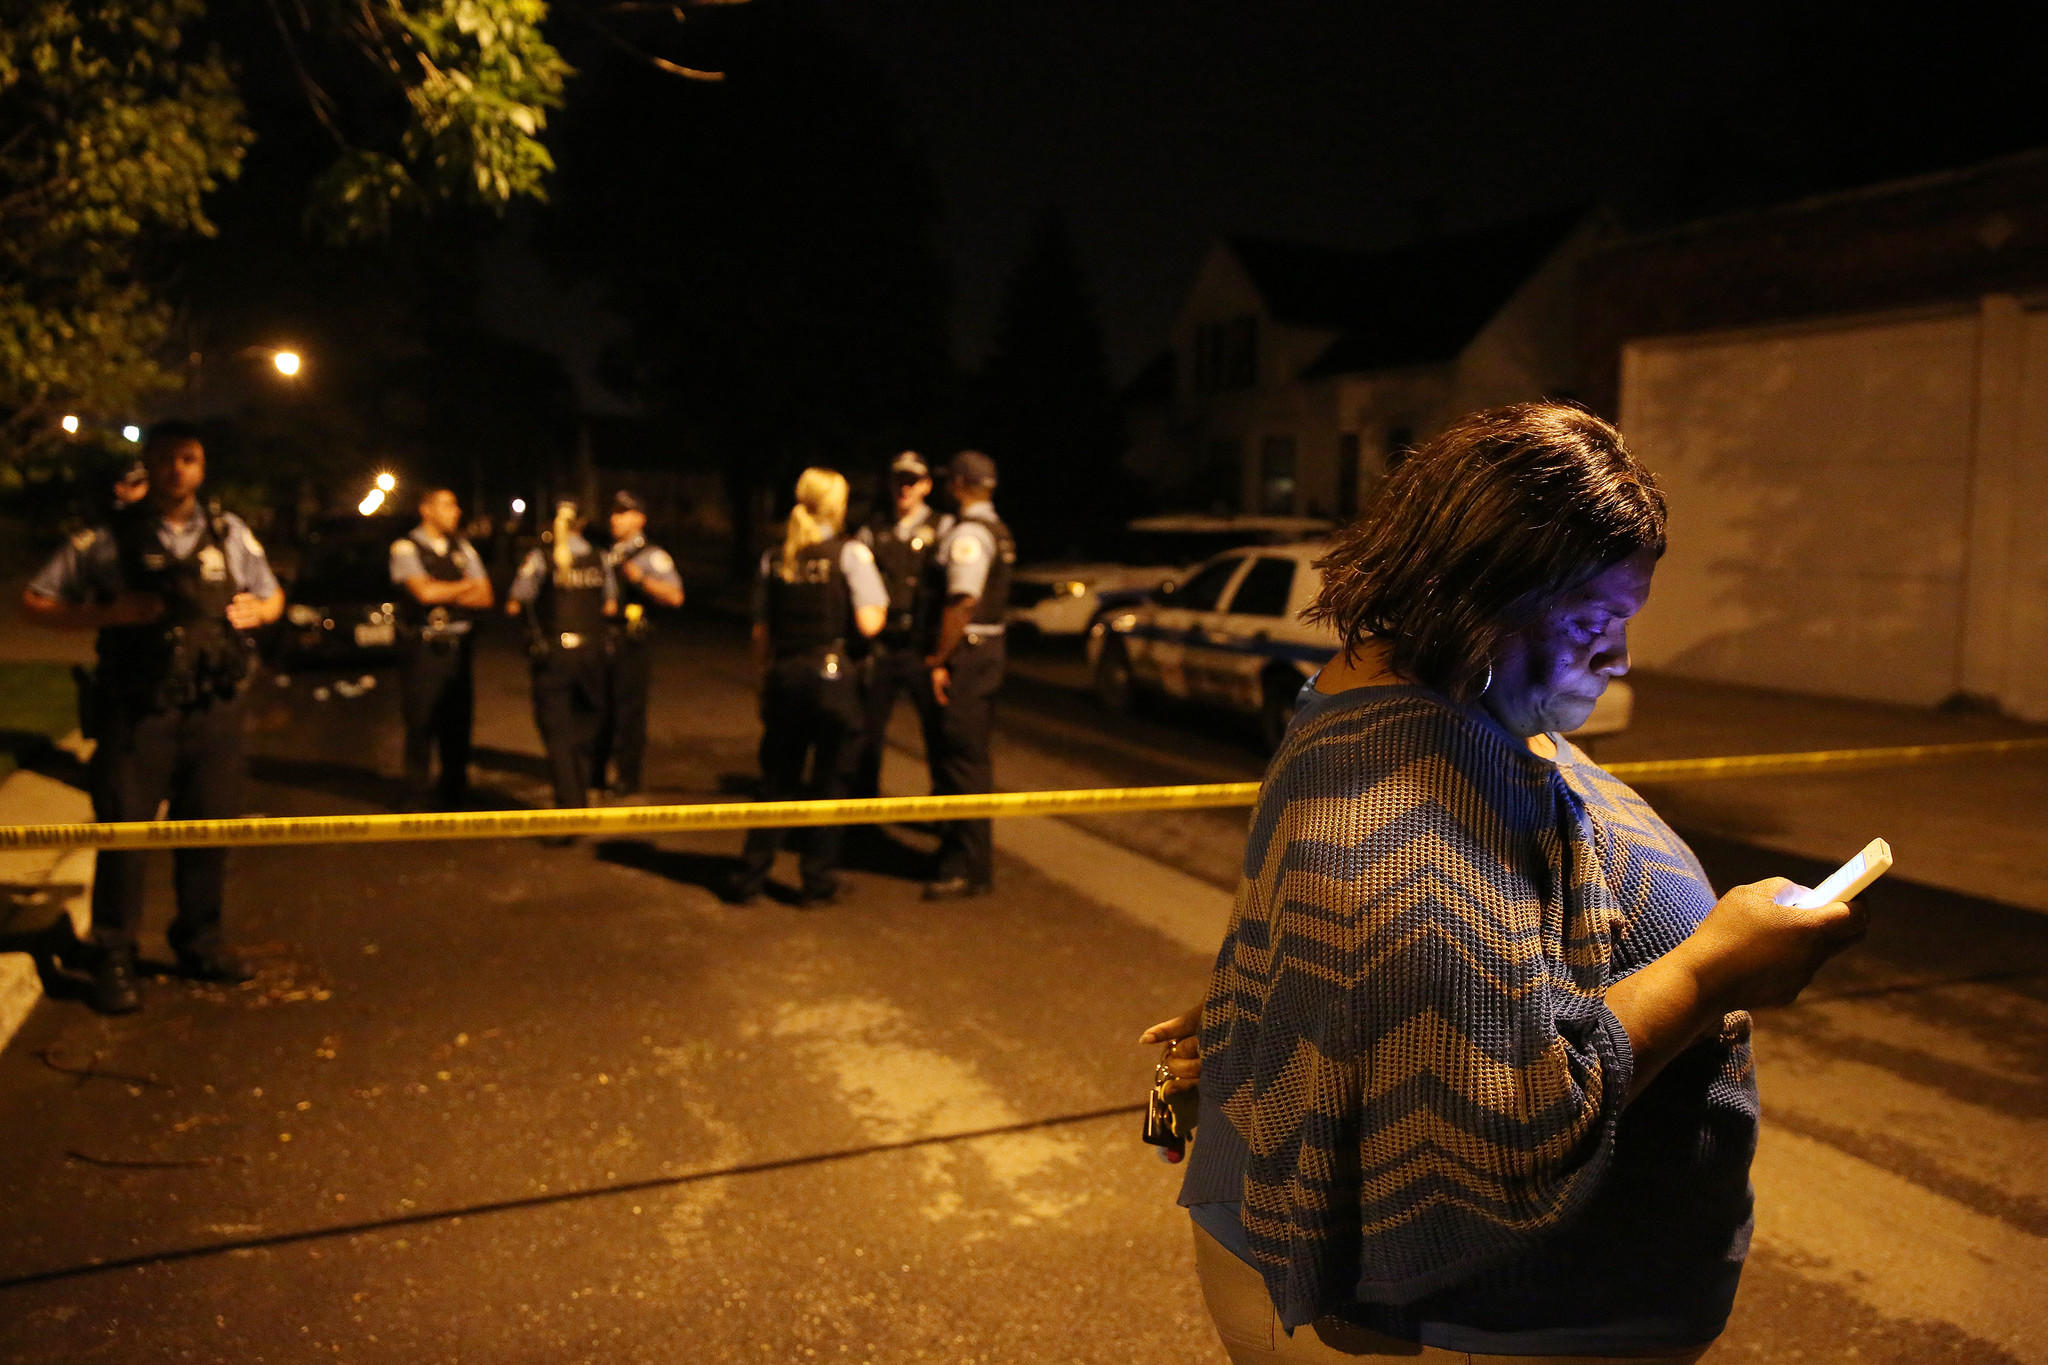 A woman who identified herself as an aunt of a 15-year-old homicide victim stands nearby as police work the scene Saturday, June 21, 2014 at the intersection of West 109th Place and South Perry Avenue in Chicago.